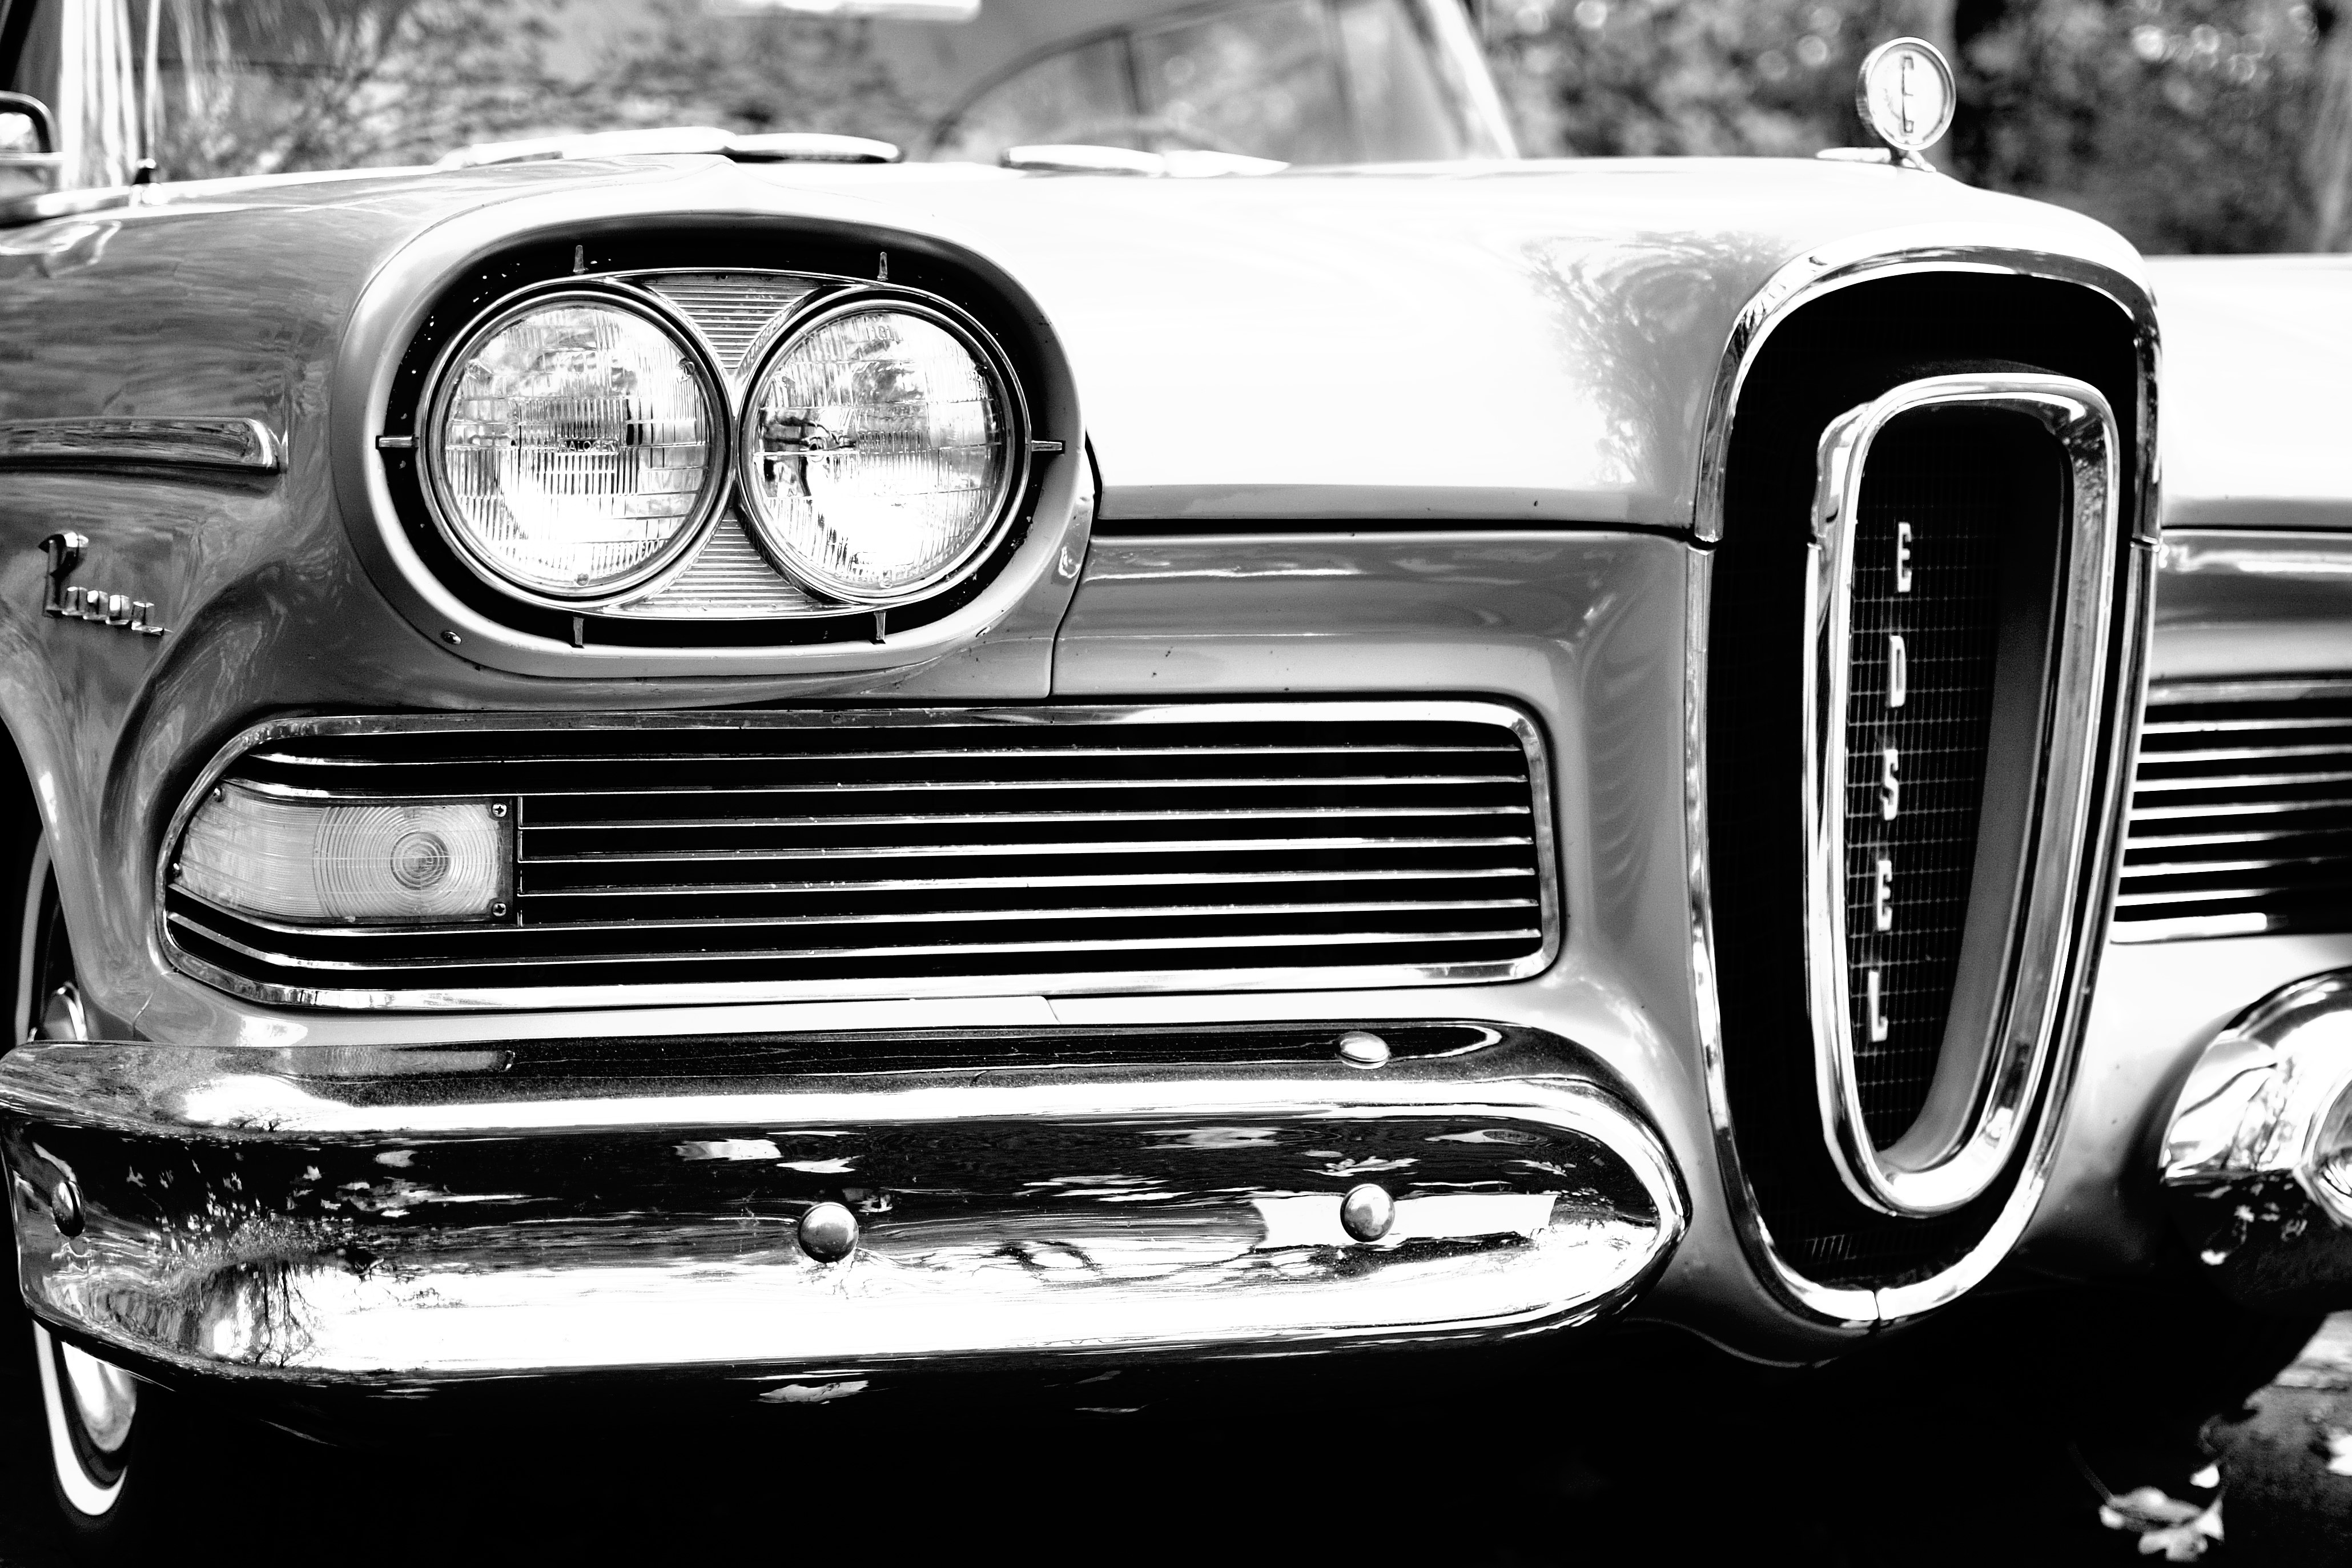 Classic Car In Grayscale Photography Free Stock Photo